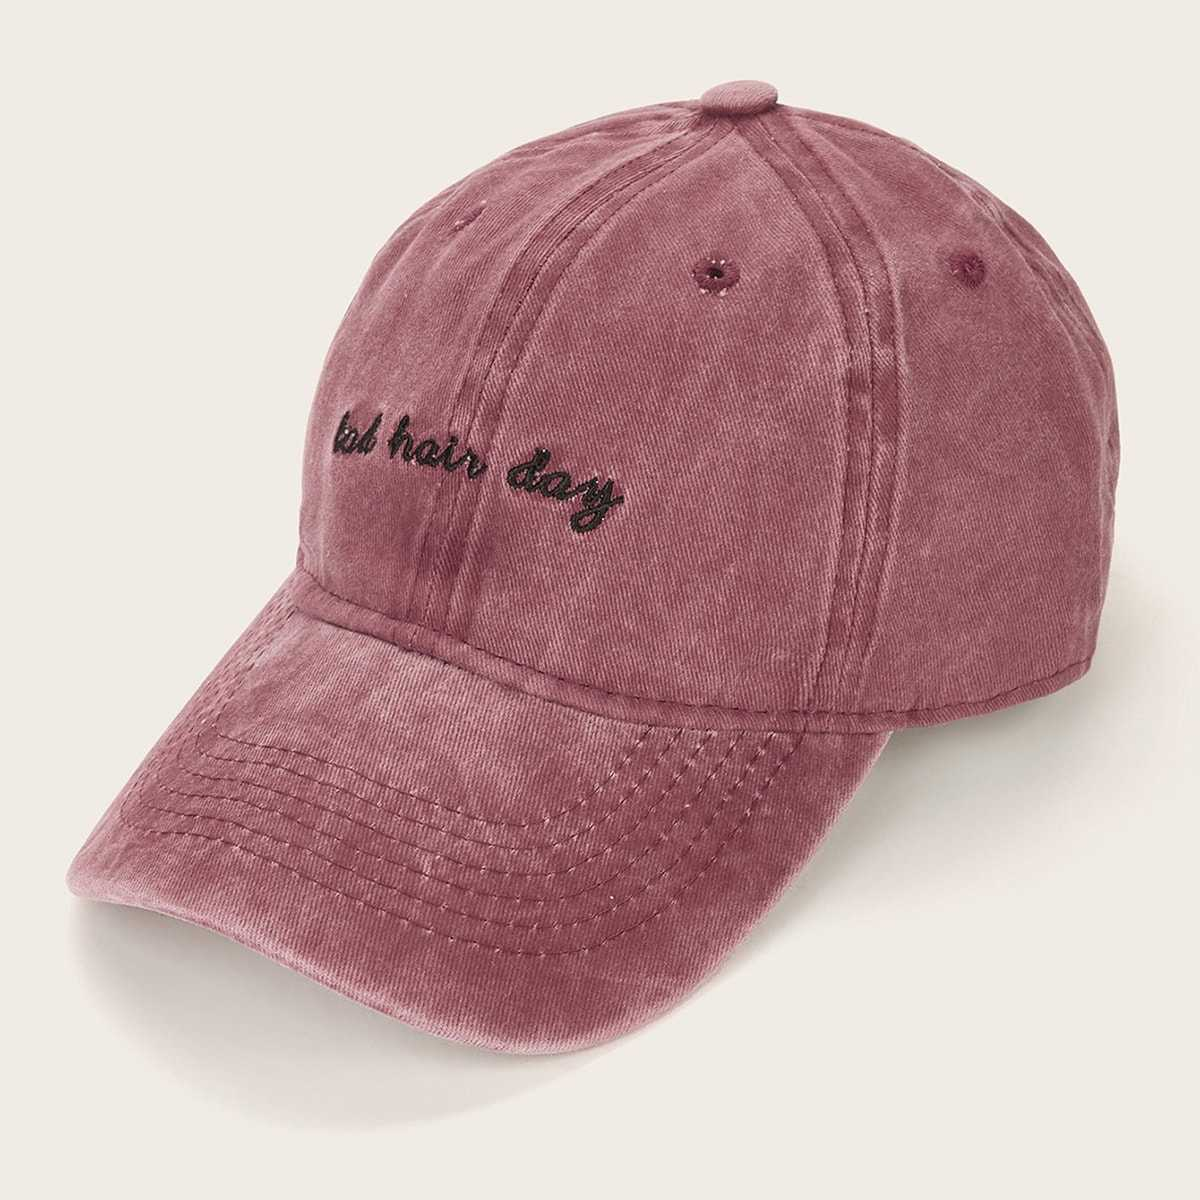 Slogan Embroidery Baseball Cap in Red by ROMWE on GOOFASH